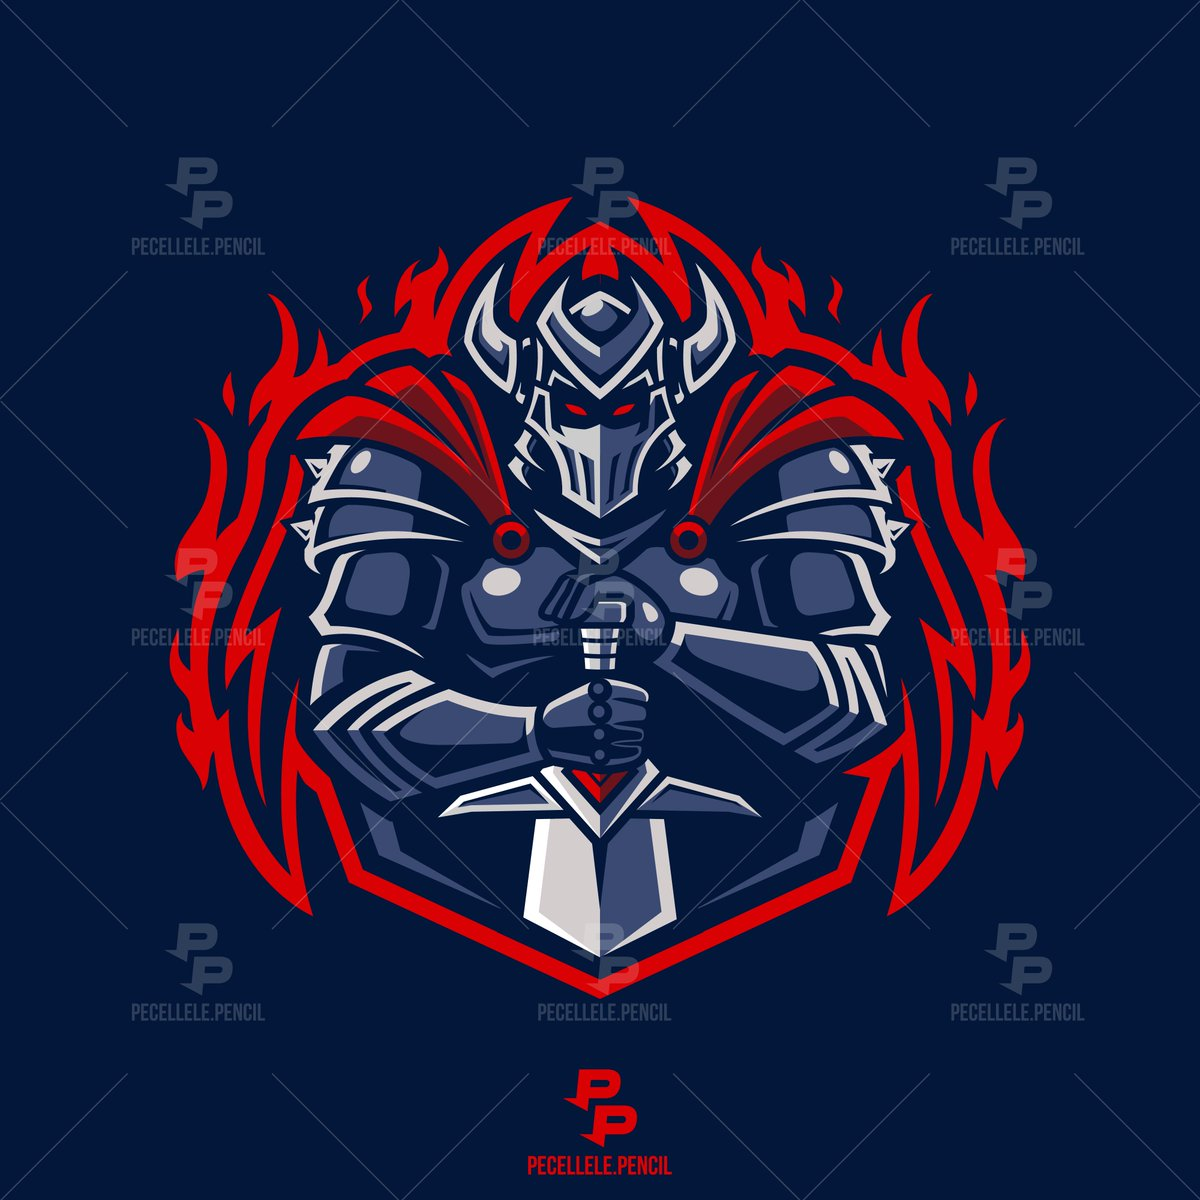 it will be available on my logo store soon. also i'm open for custom project guys!  @DynoRTs @Demented_RTs  @SGH_RTs @GFXCoach  @IconRTs @Agile_RTs @GamerGalsRT @PromoteGamers @BlazedRTs @DripRT @TwitchTVOnline  #twitchtv #esports #gaminglogo #mascotlogo #logogaming #squadlogo pic.twitter.com/ql0P2B48Xg